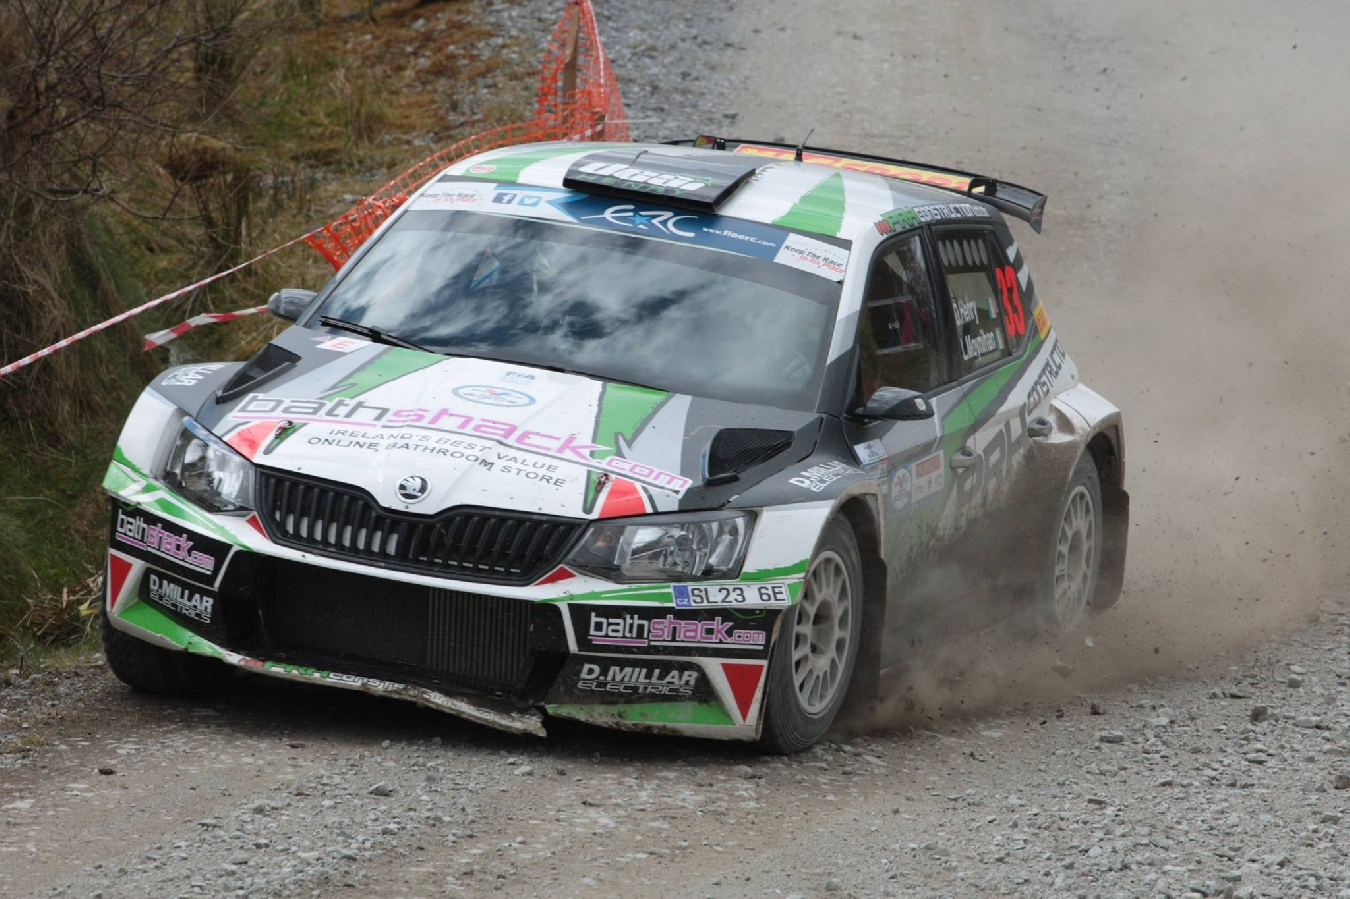 Finish Crucial For Desi On Glens of Antrim Finale! Valvoline Motorsport Ireland National Forest Championship Round 7 Preview